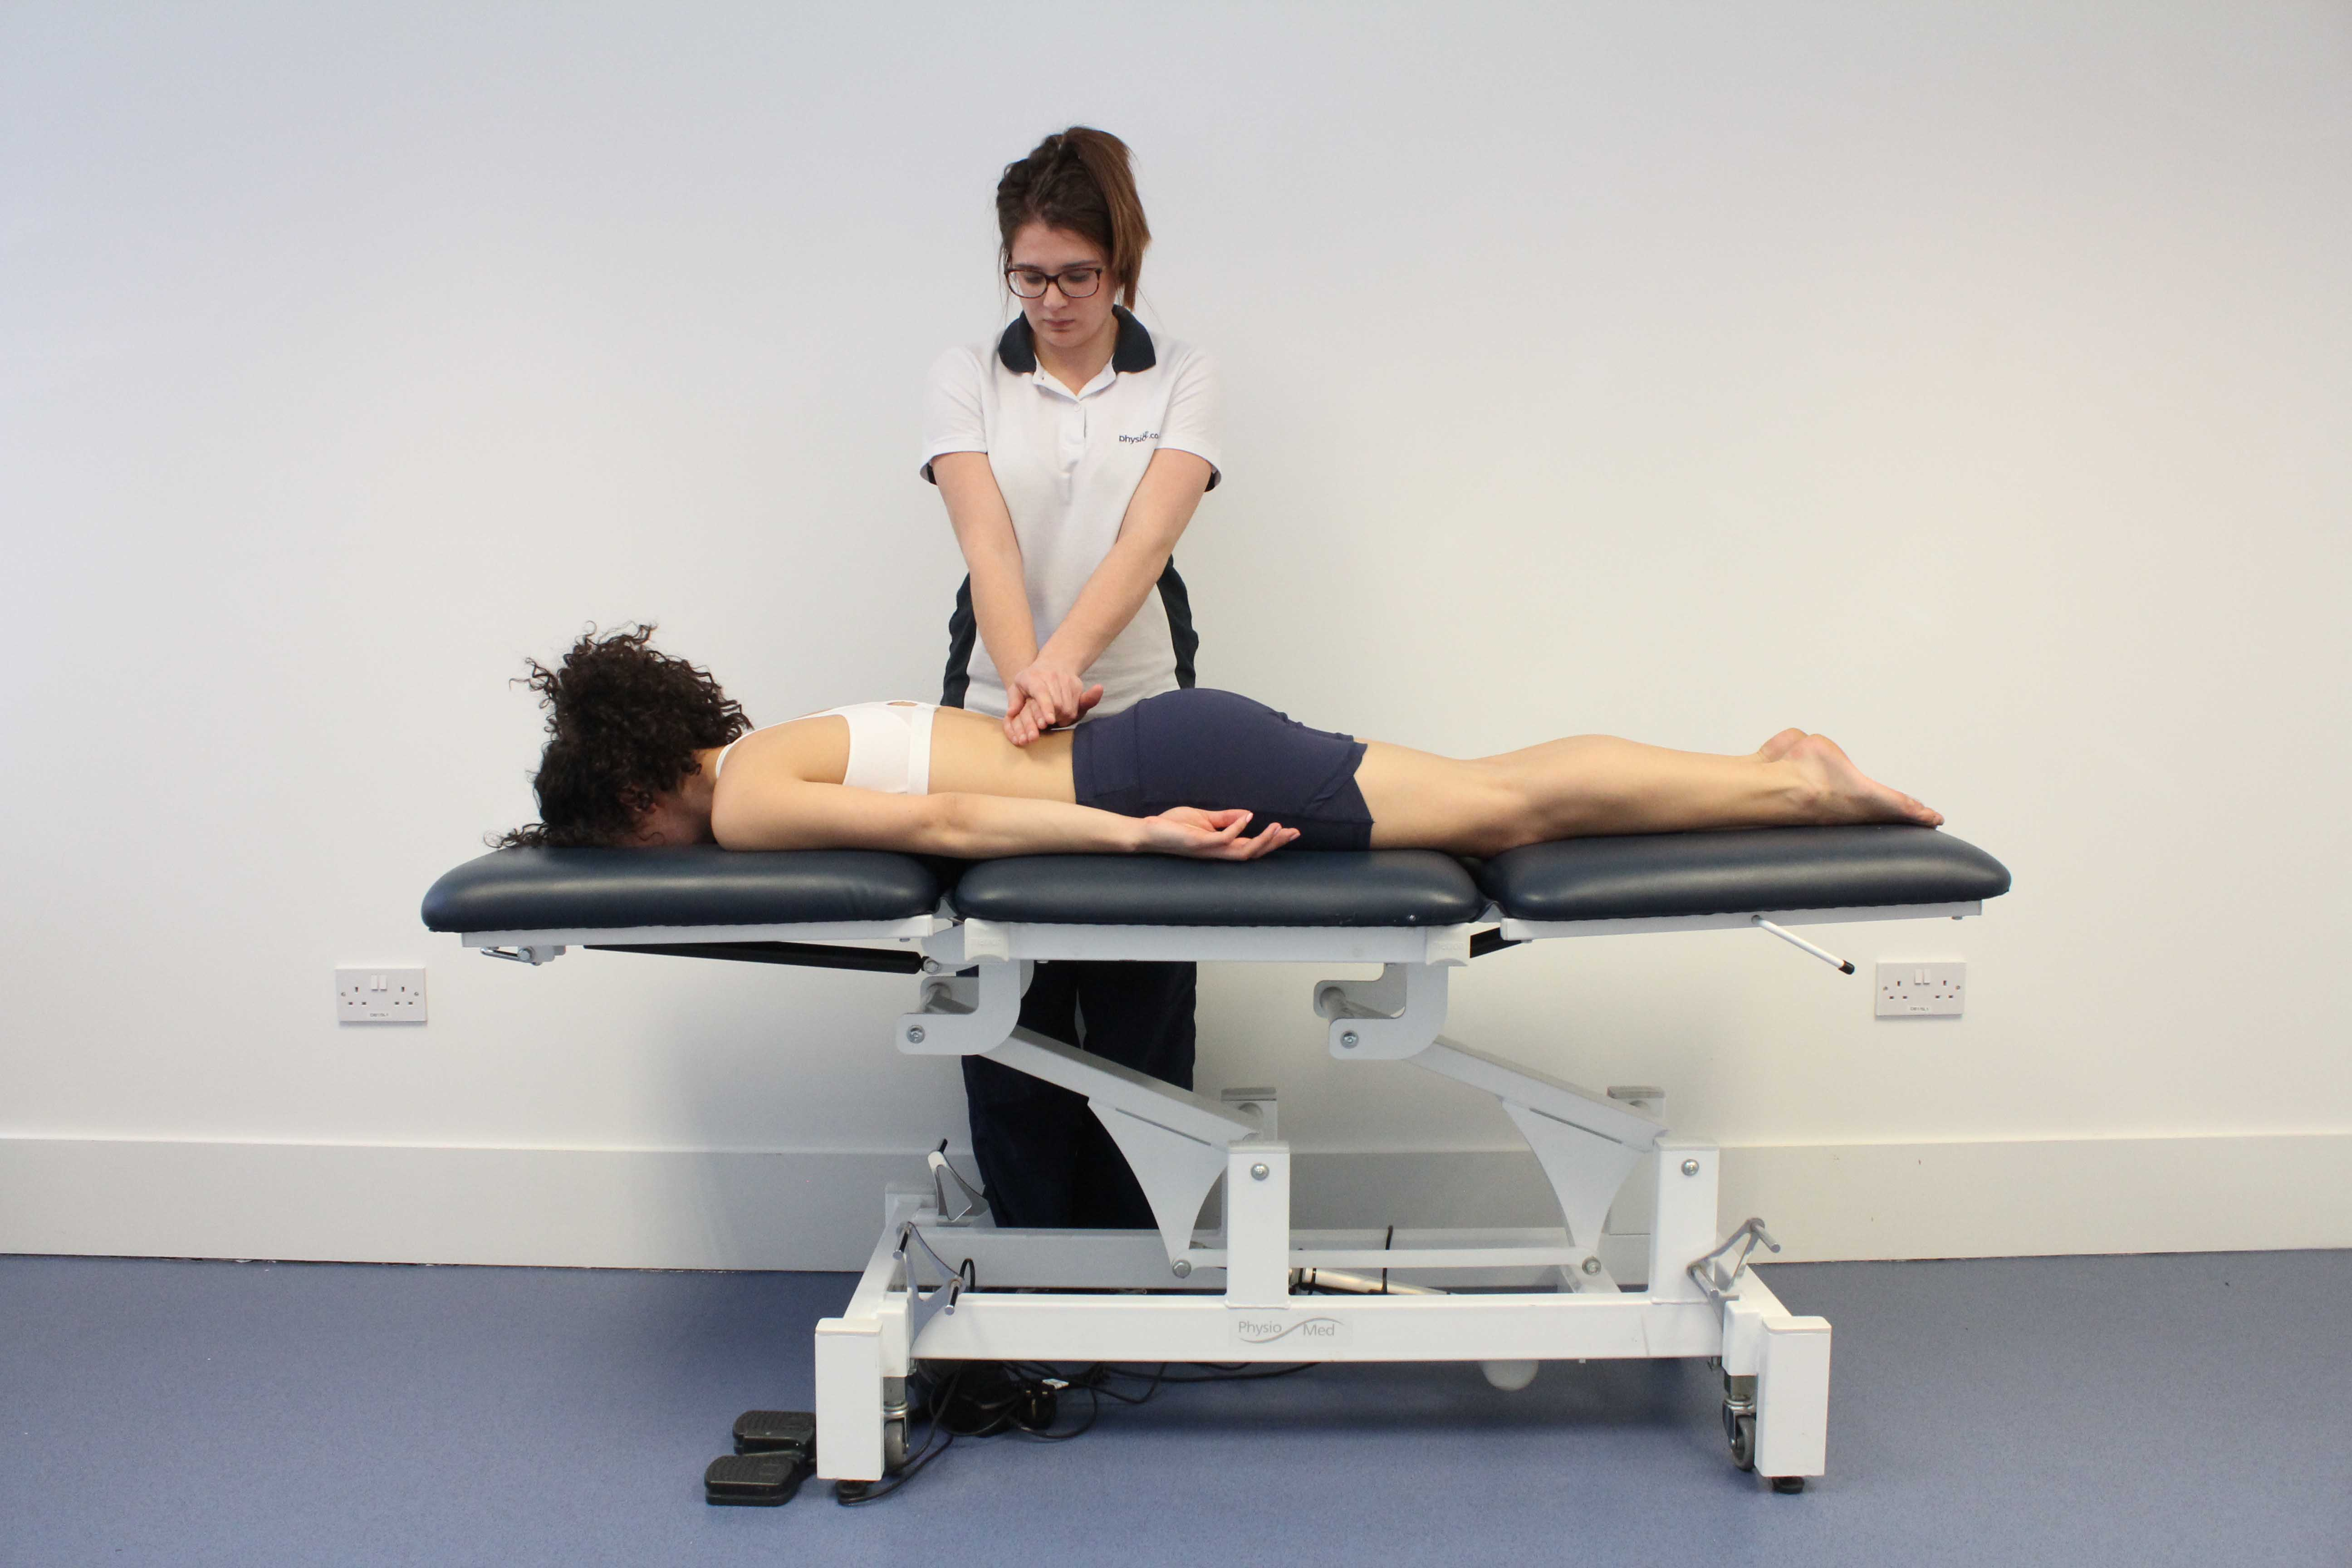 Experienced MSK physiotherapist conducting upper back assessment